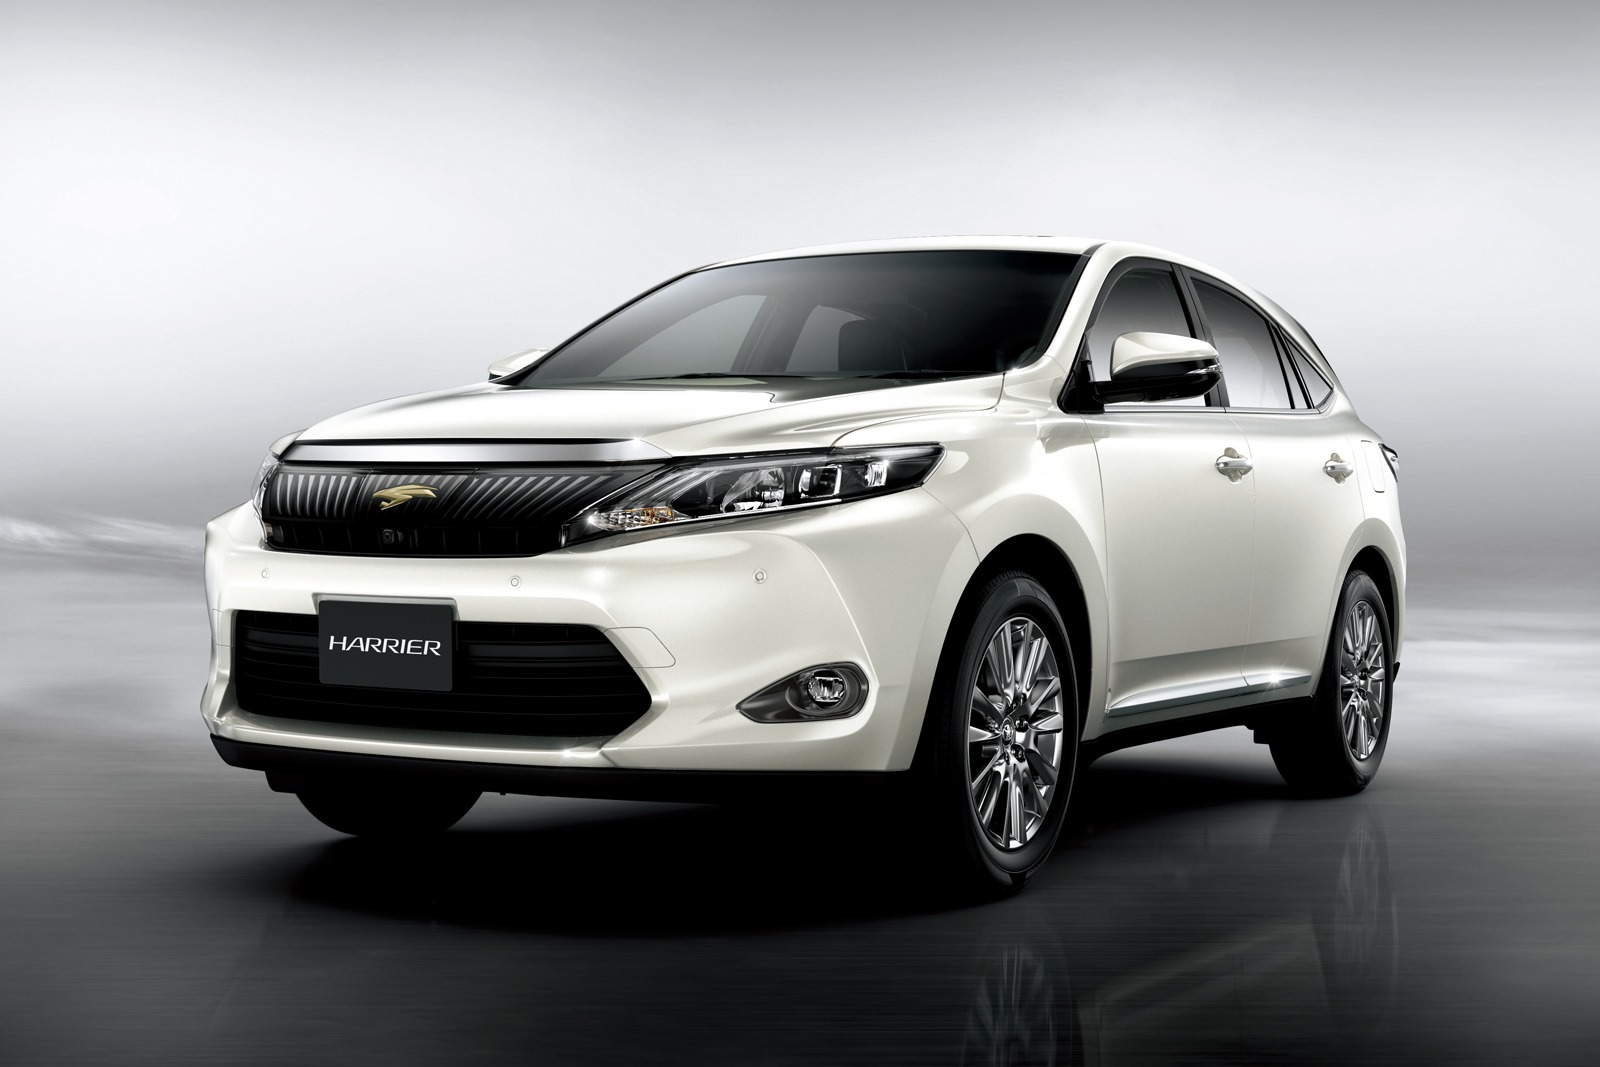 new toyota harrier suv photo gallery car gallery suv crossovers autocar india. Black Bedroom Furniture Sets. Home Design Ideas